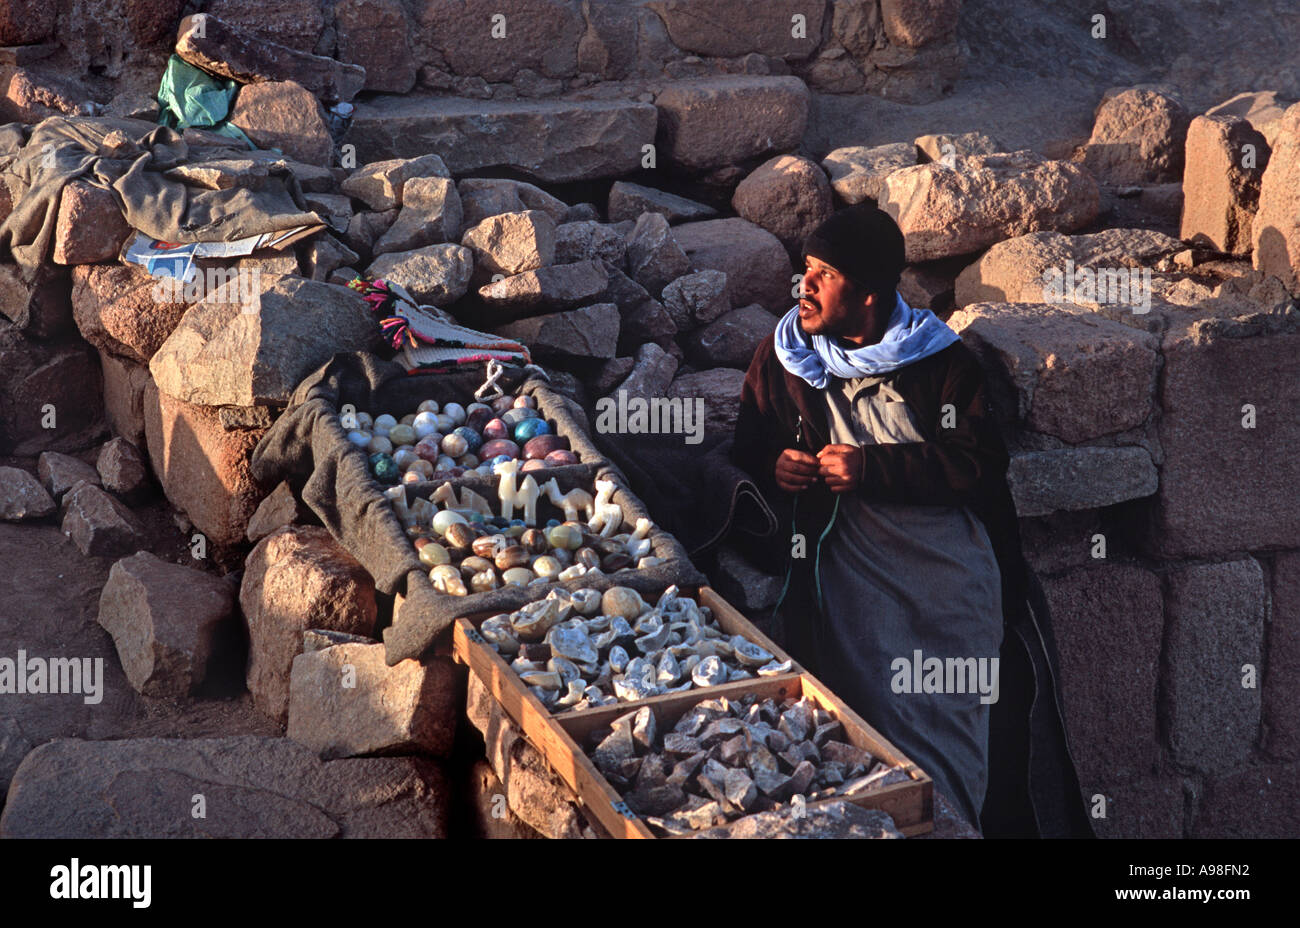 Bedouin vendor selling from his stall on the summit of Mount Sinai 'holy land' Sinai Egypt - Stock Image